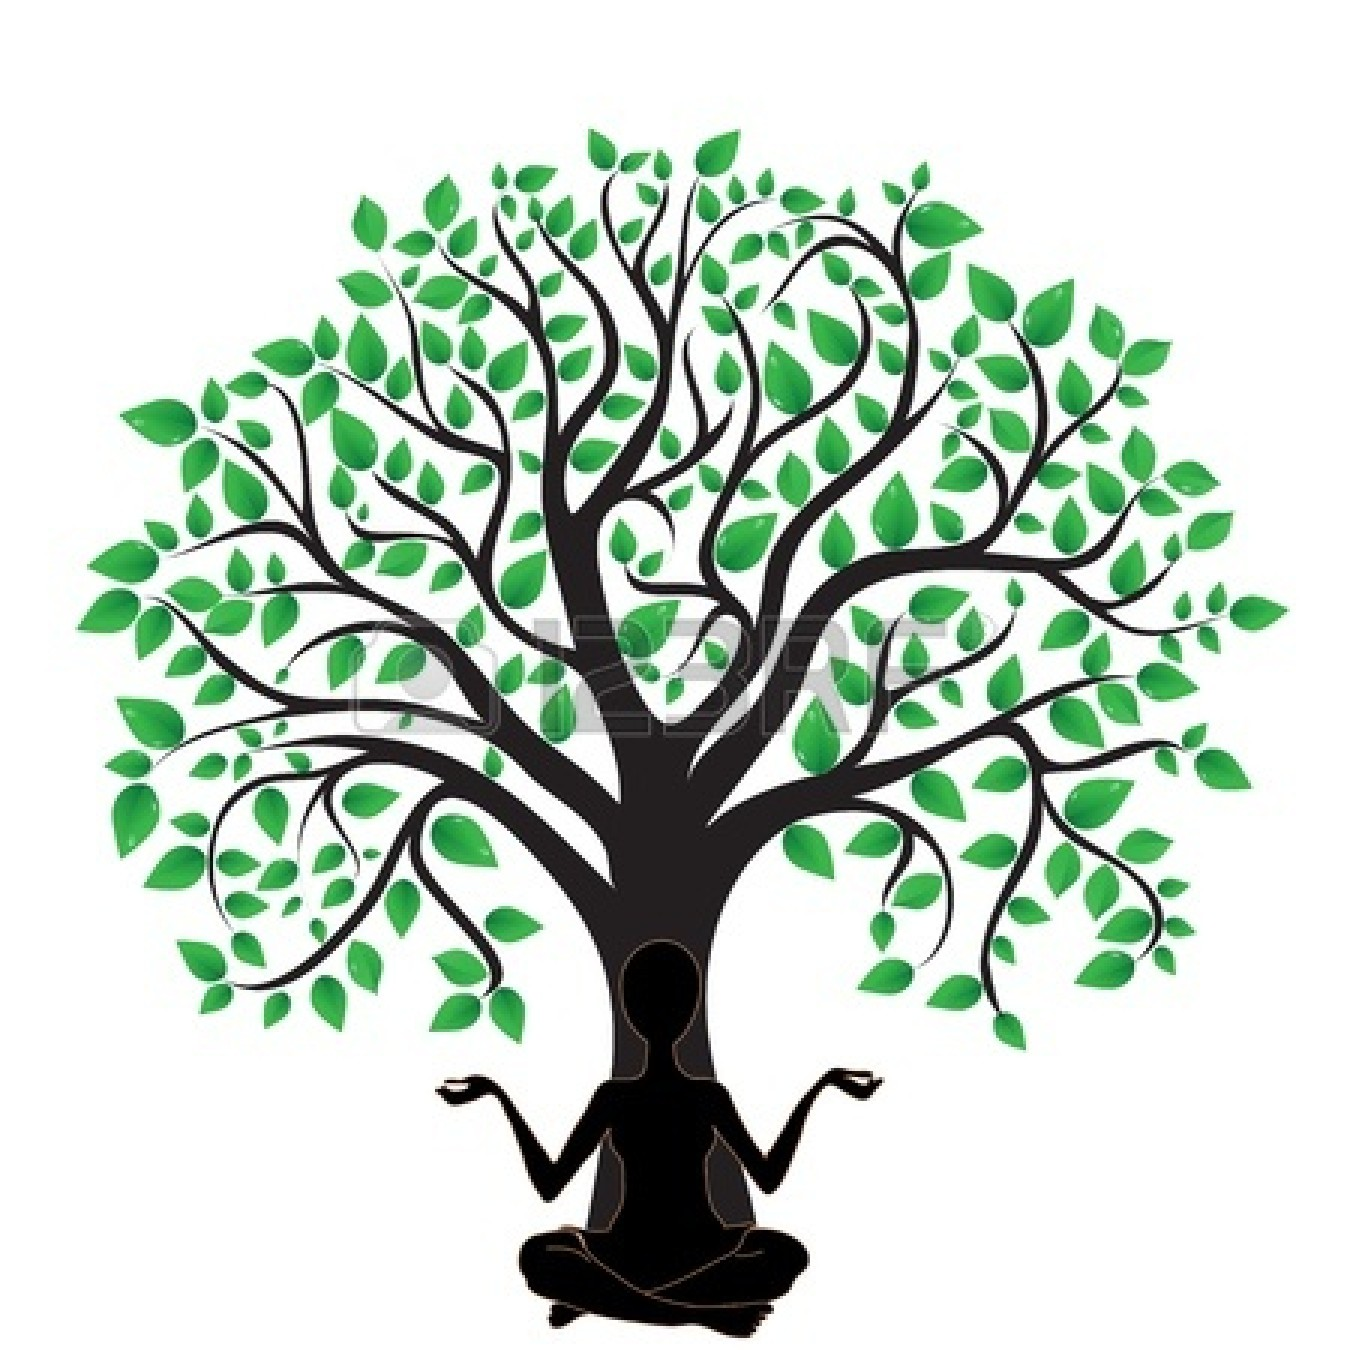 tree silhouette clip art at getdrawings com free for personal use rh getdrawings com oak tree clipart free oak tree clipart black and white